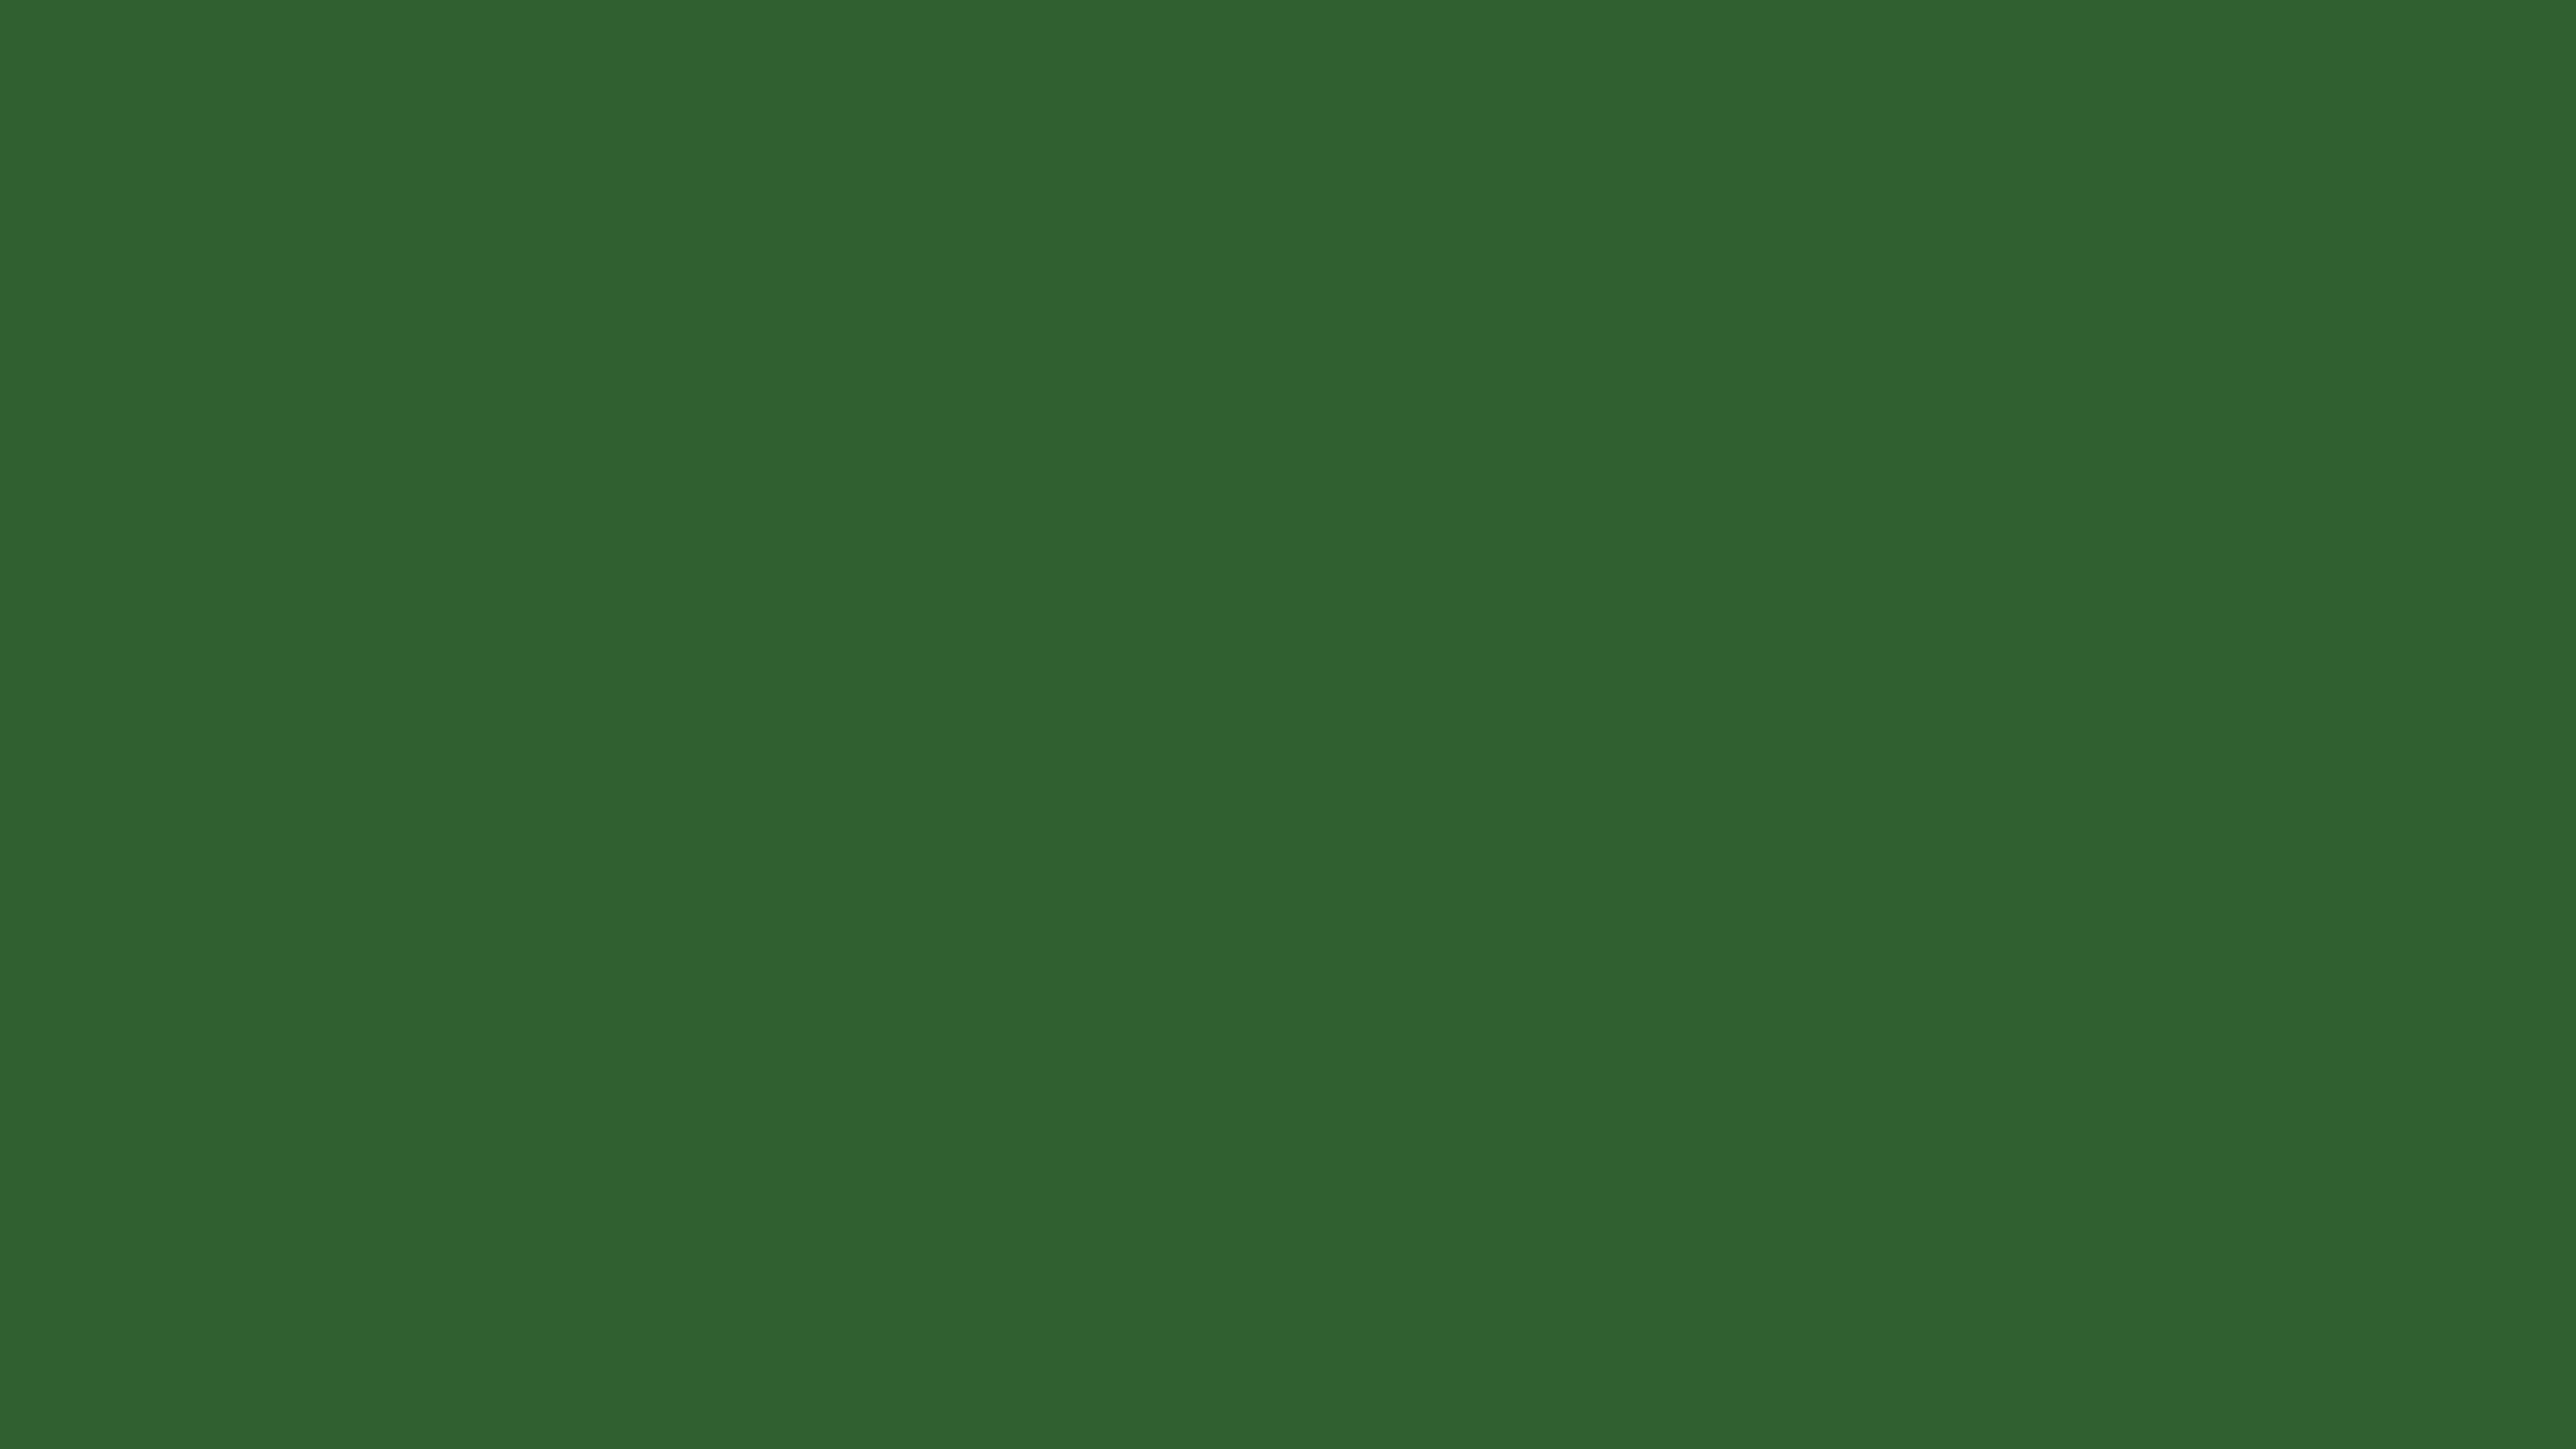 7680x4320 Mughal Green Solid Color Background